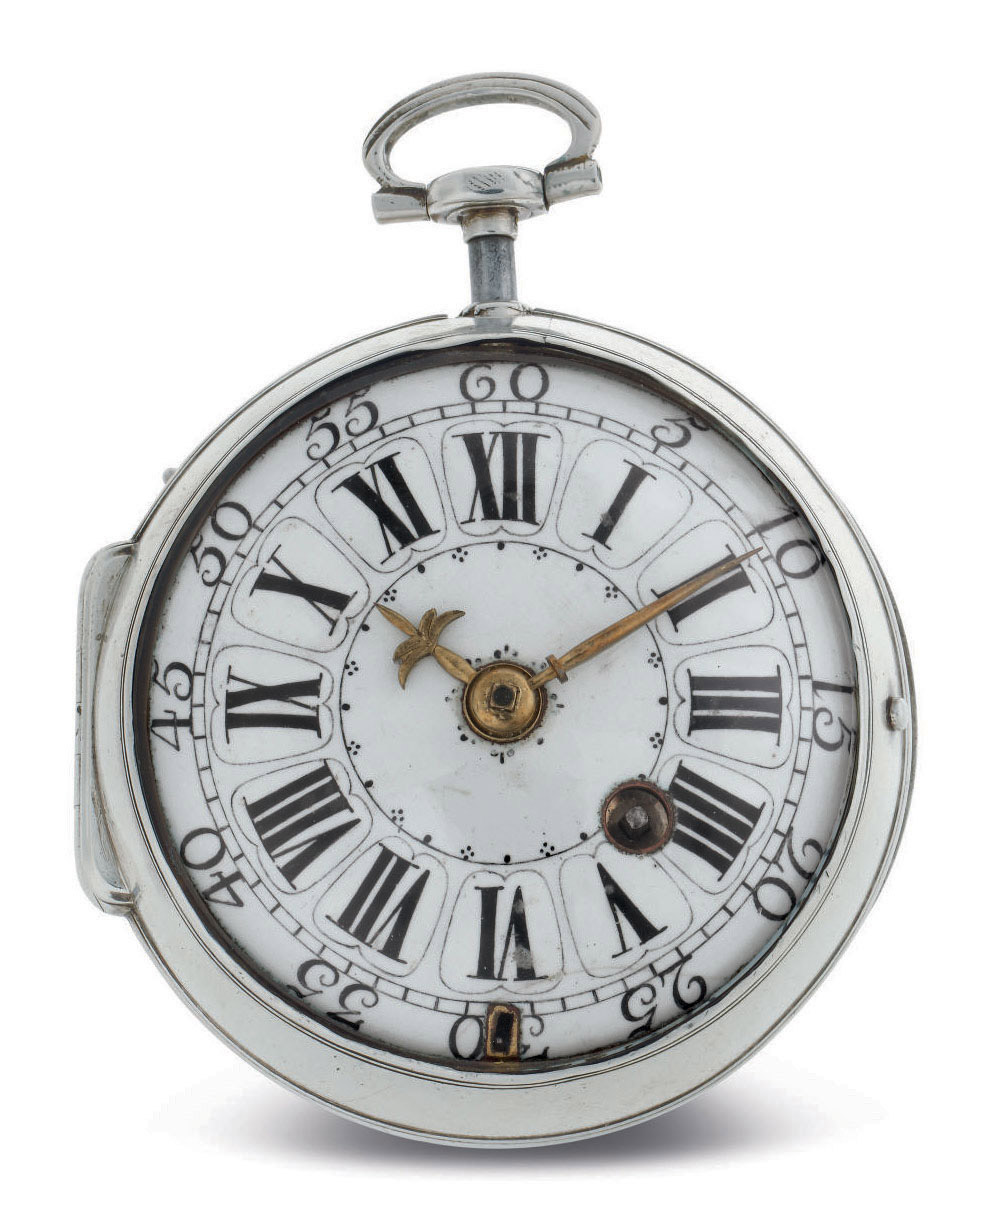 NICOLAS DUPRÉ. A SILVER OPENFACE QUARTER REPEATING VERGE POCKET WATCH